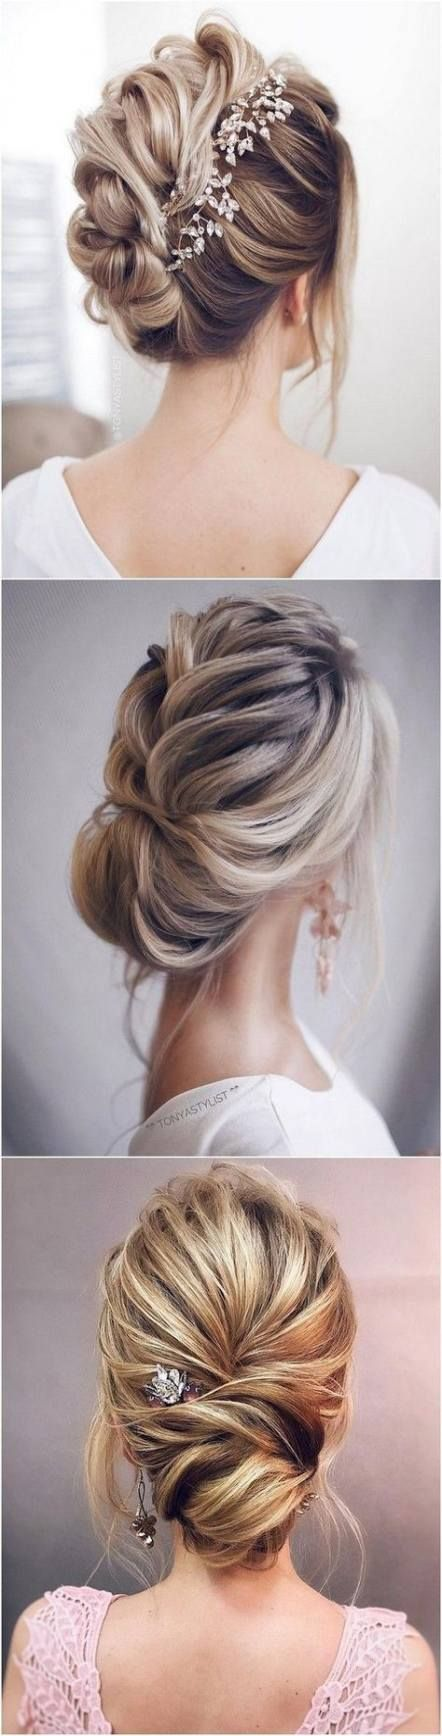 Super Hairstyles Bridal Top Knot Ideas